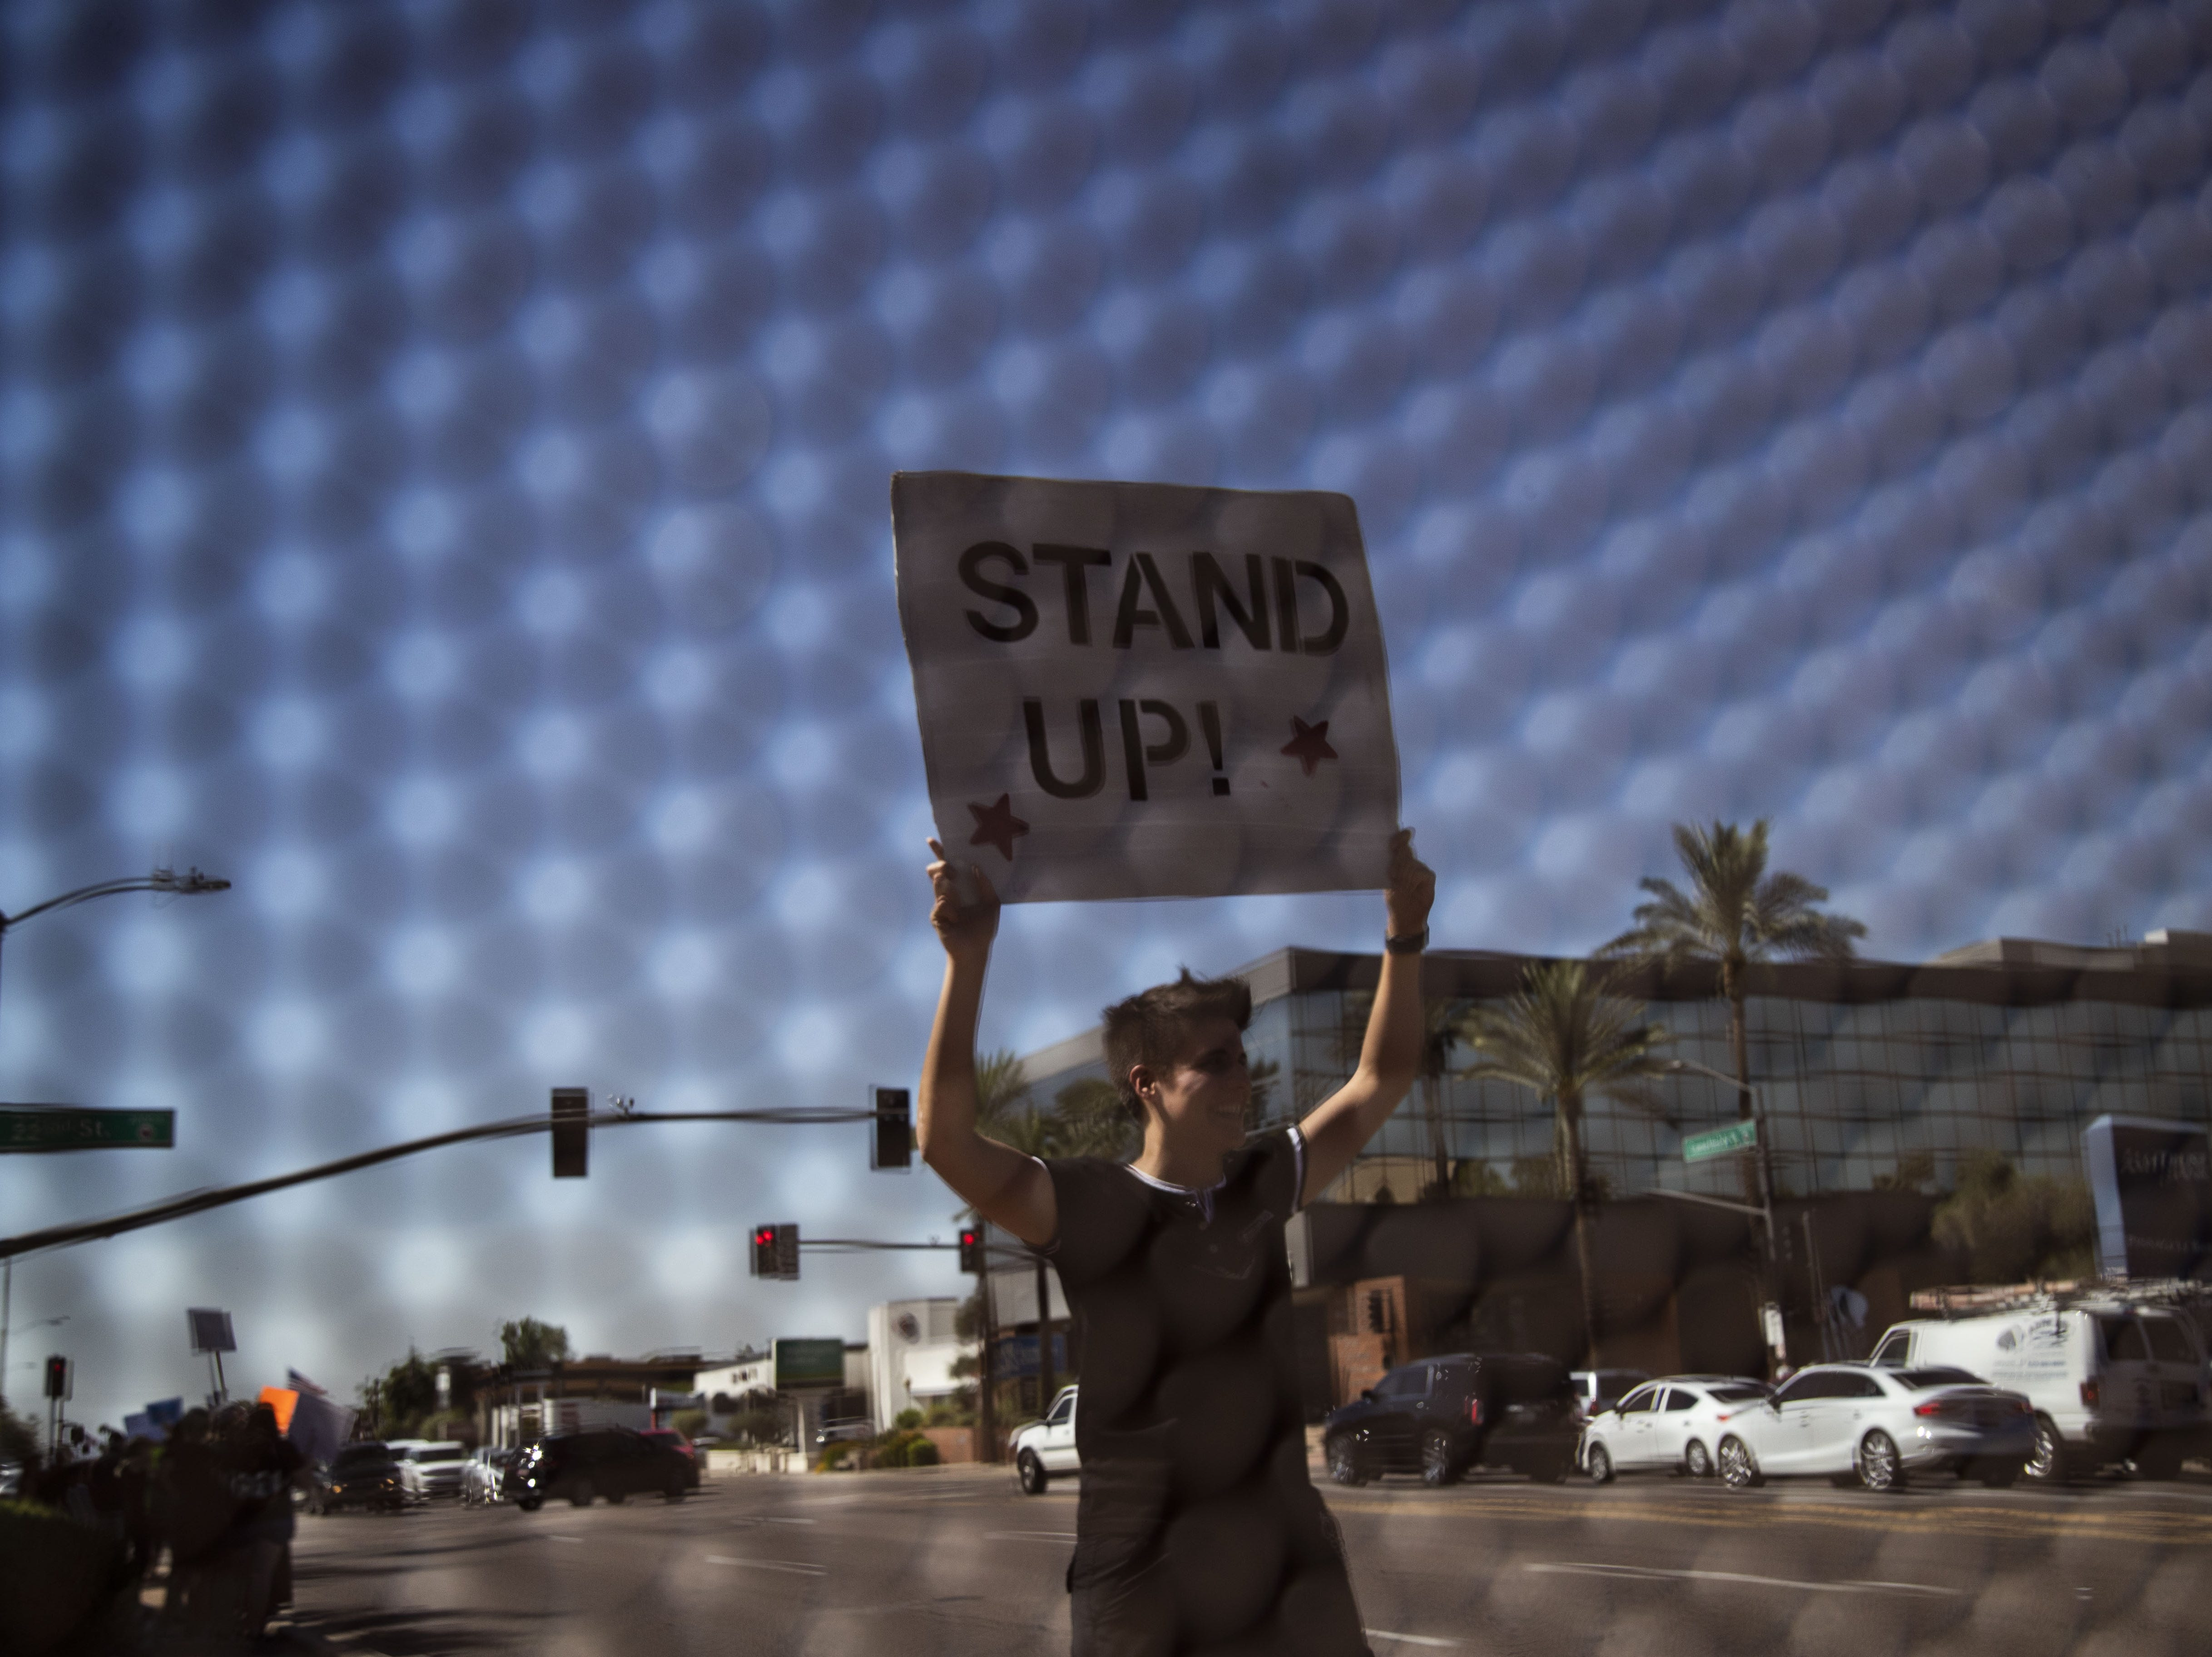 Phoenix resident Jessica Spencer protests Sept. 28, 2018, outside of Jeff Flake's office in Phoenix after he said he wouldn't support a U.S. Senate floor vote for Judge Brett Kavanaugh's Supreme Court confirmation without first allowing an FBI investigation into sexual harassment accusations against Kavanaugh.